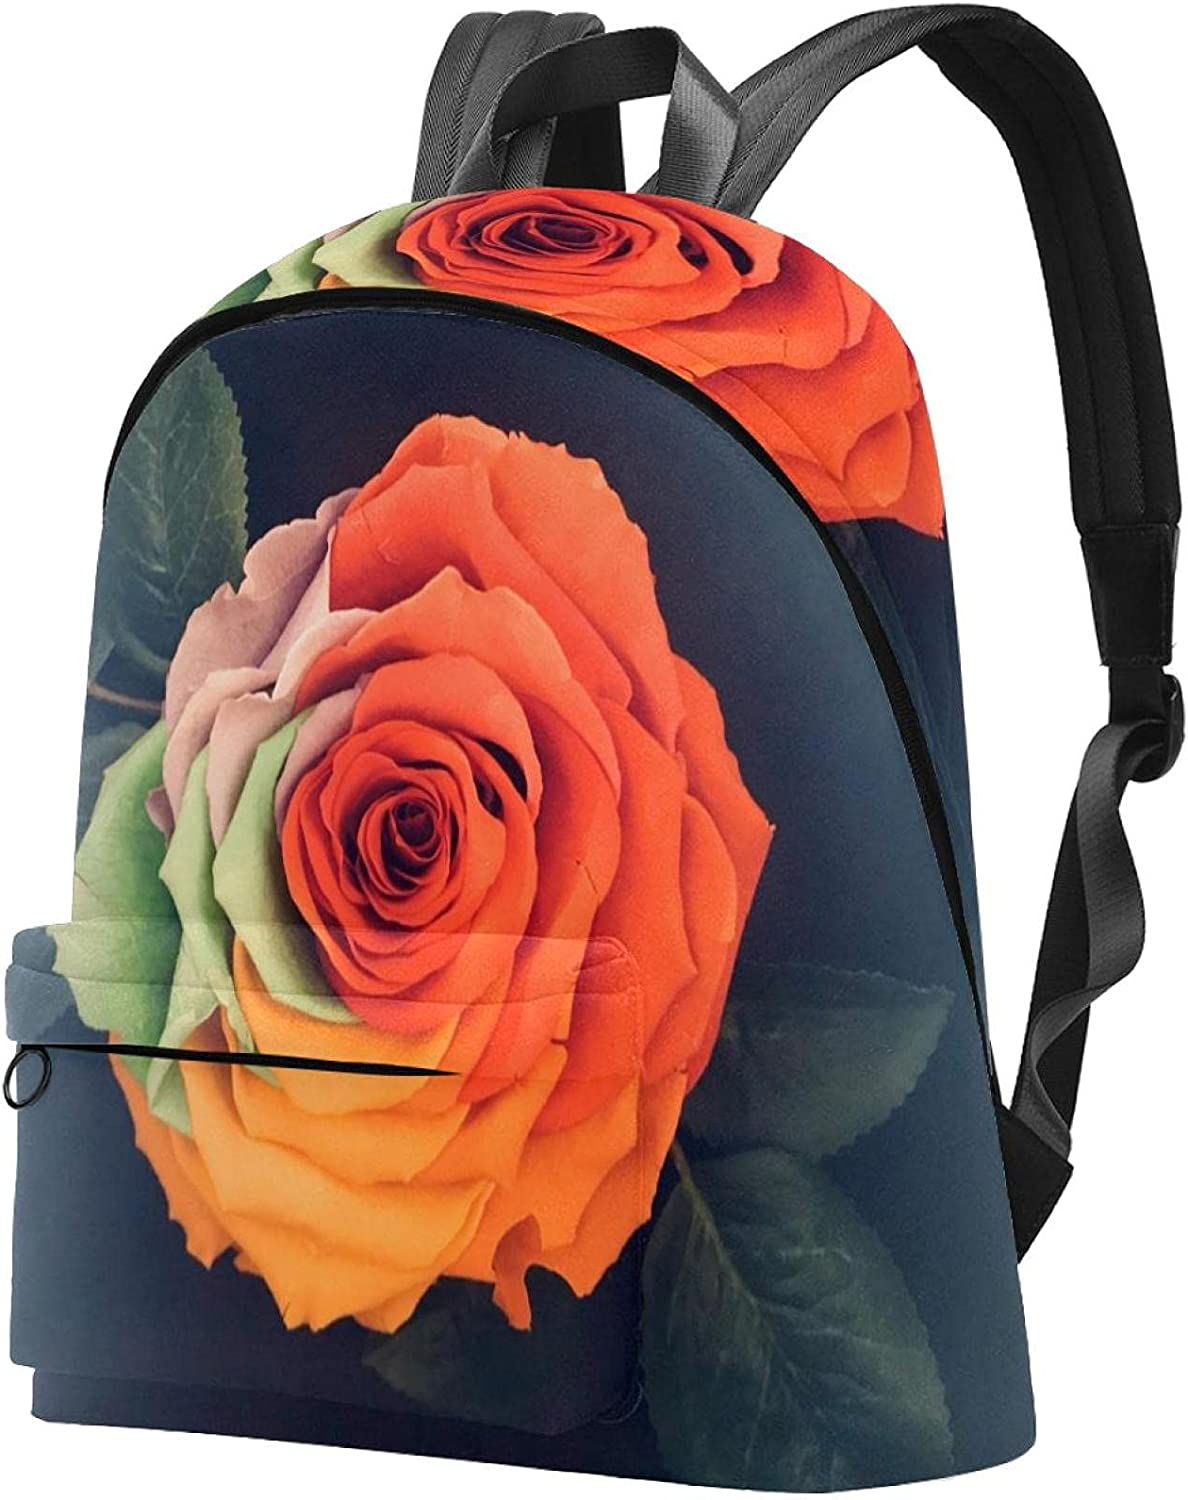 Travel Backpack Laptop Albuquerque Mall Large specialty shop School Bag rainbow ar rose